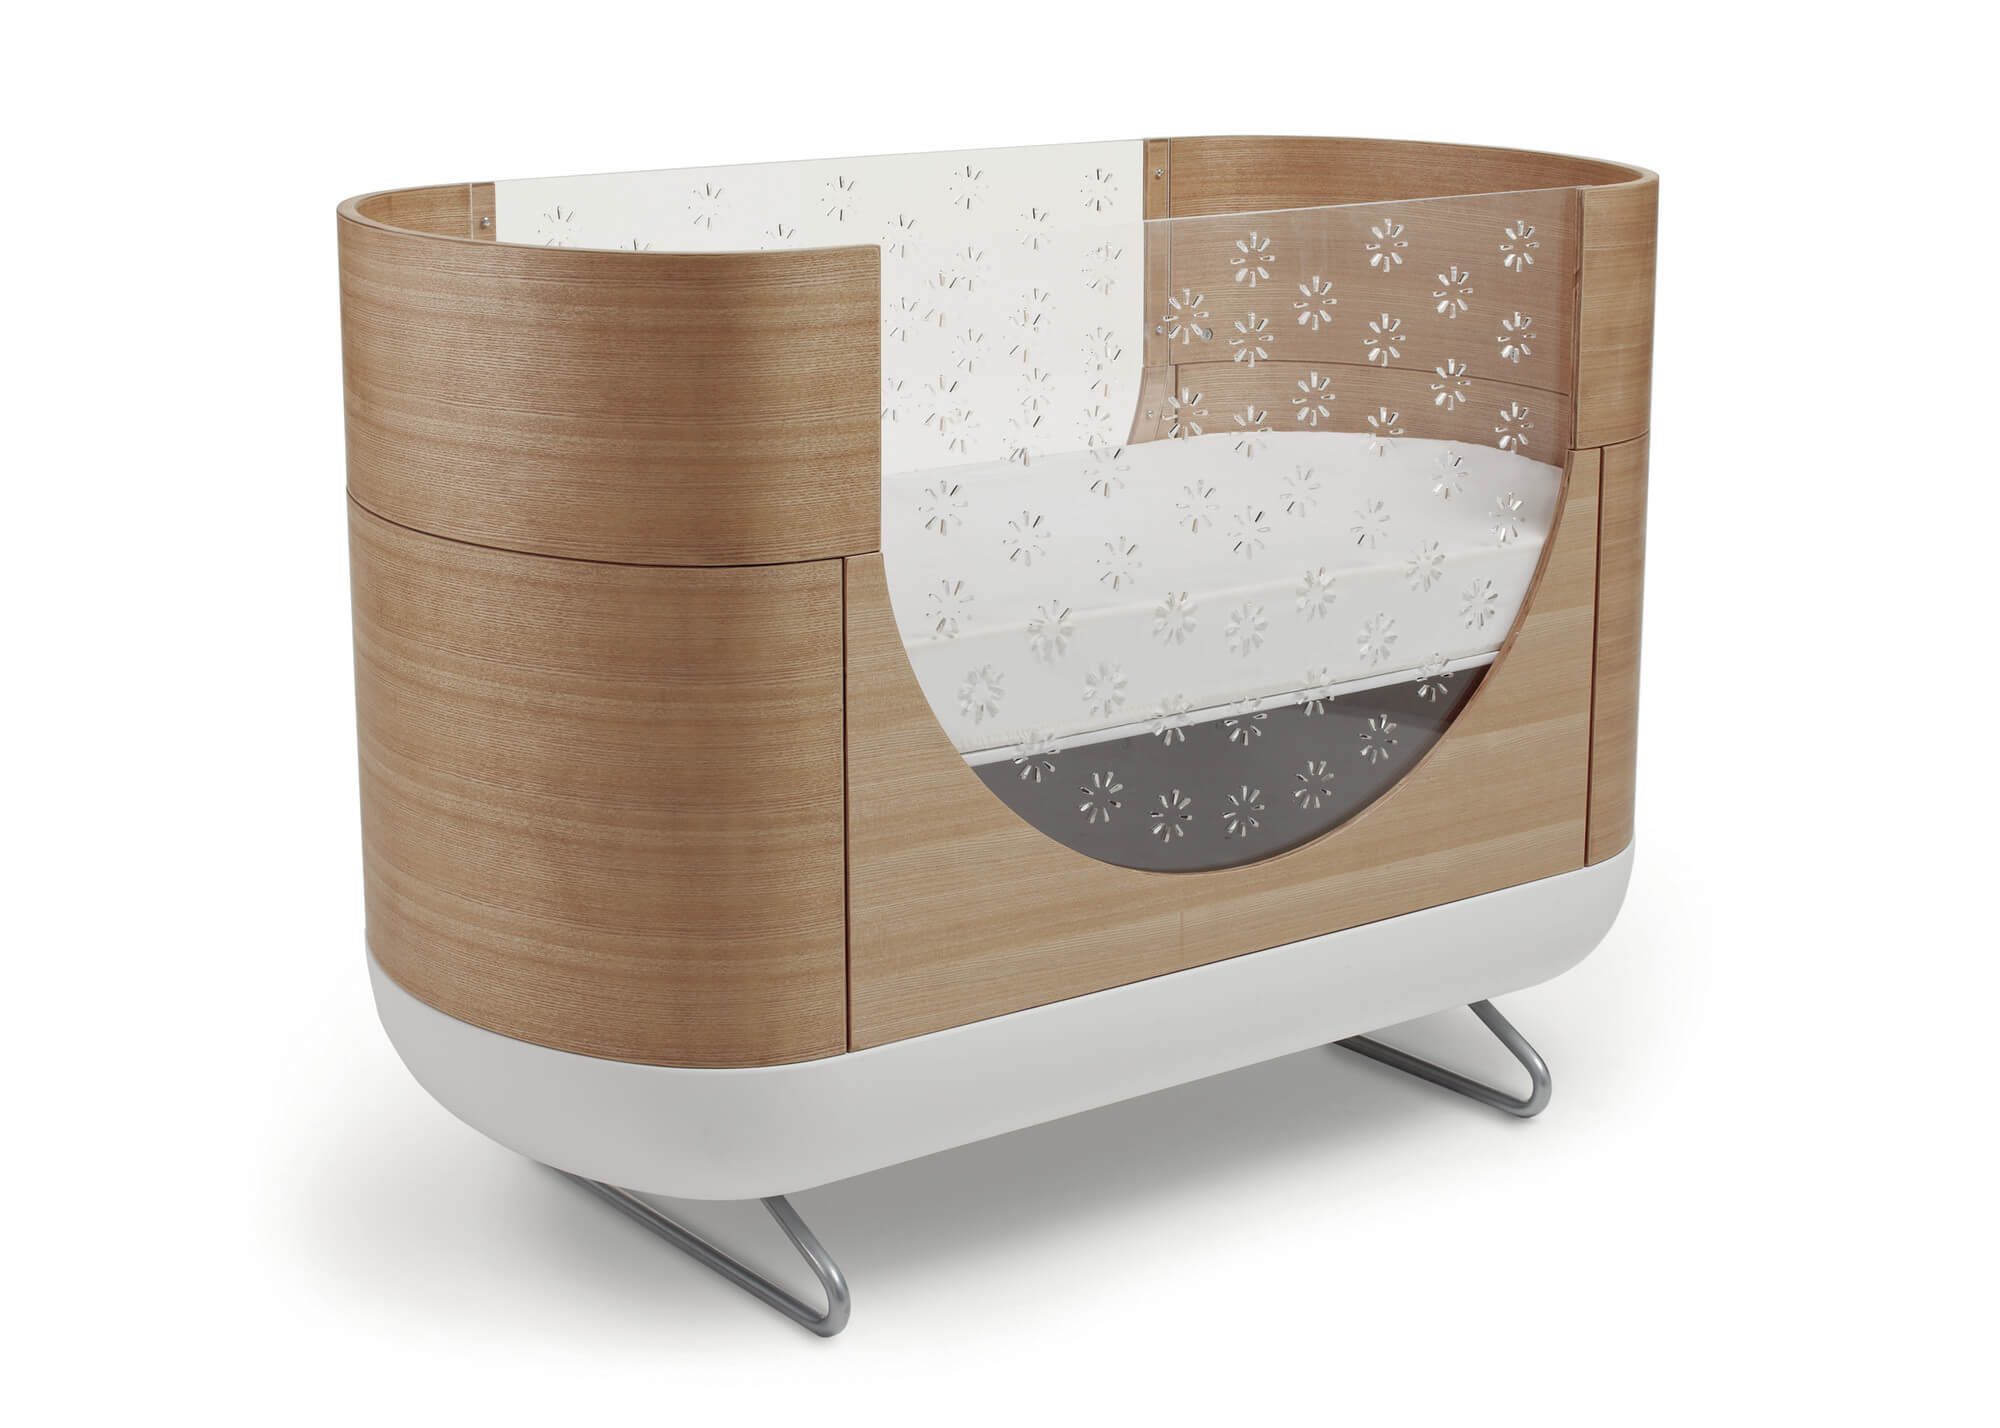 This striking, uniquely designed crib from Ubabub in coccon shape with modernist rounded edges will stand out in any home. Clear side panel has micro laser cuts for airflow, too small for fingers to get into, offering full view of outside world for baby. The smooth, rounded wood construction adds class and elegance in any space.